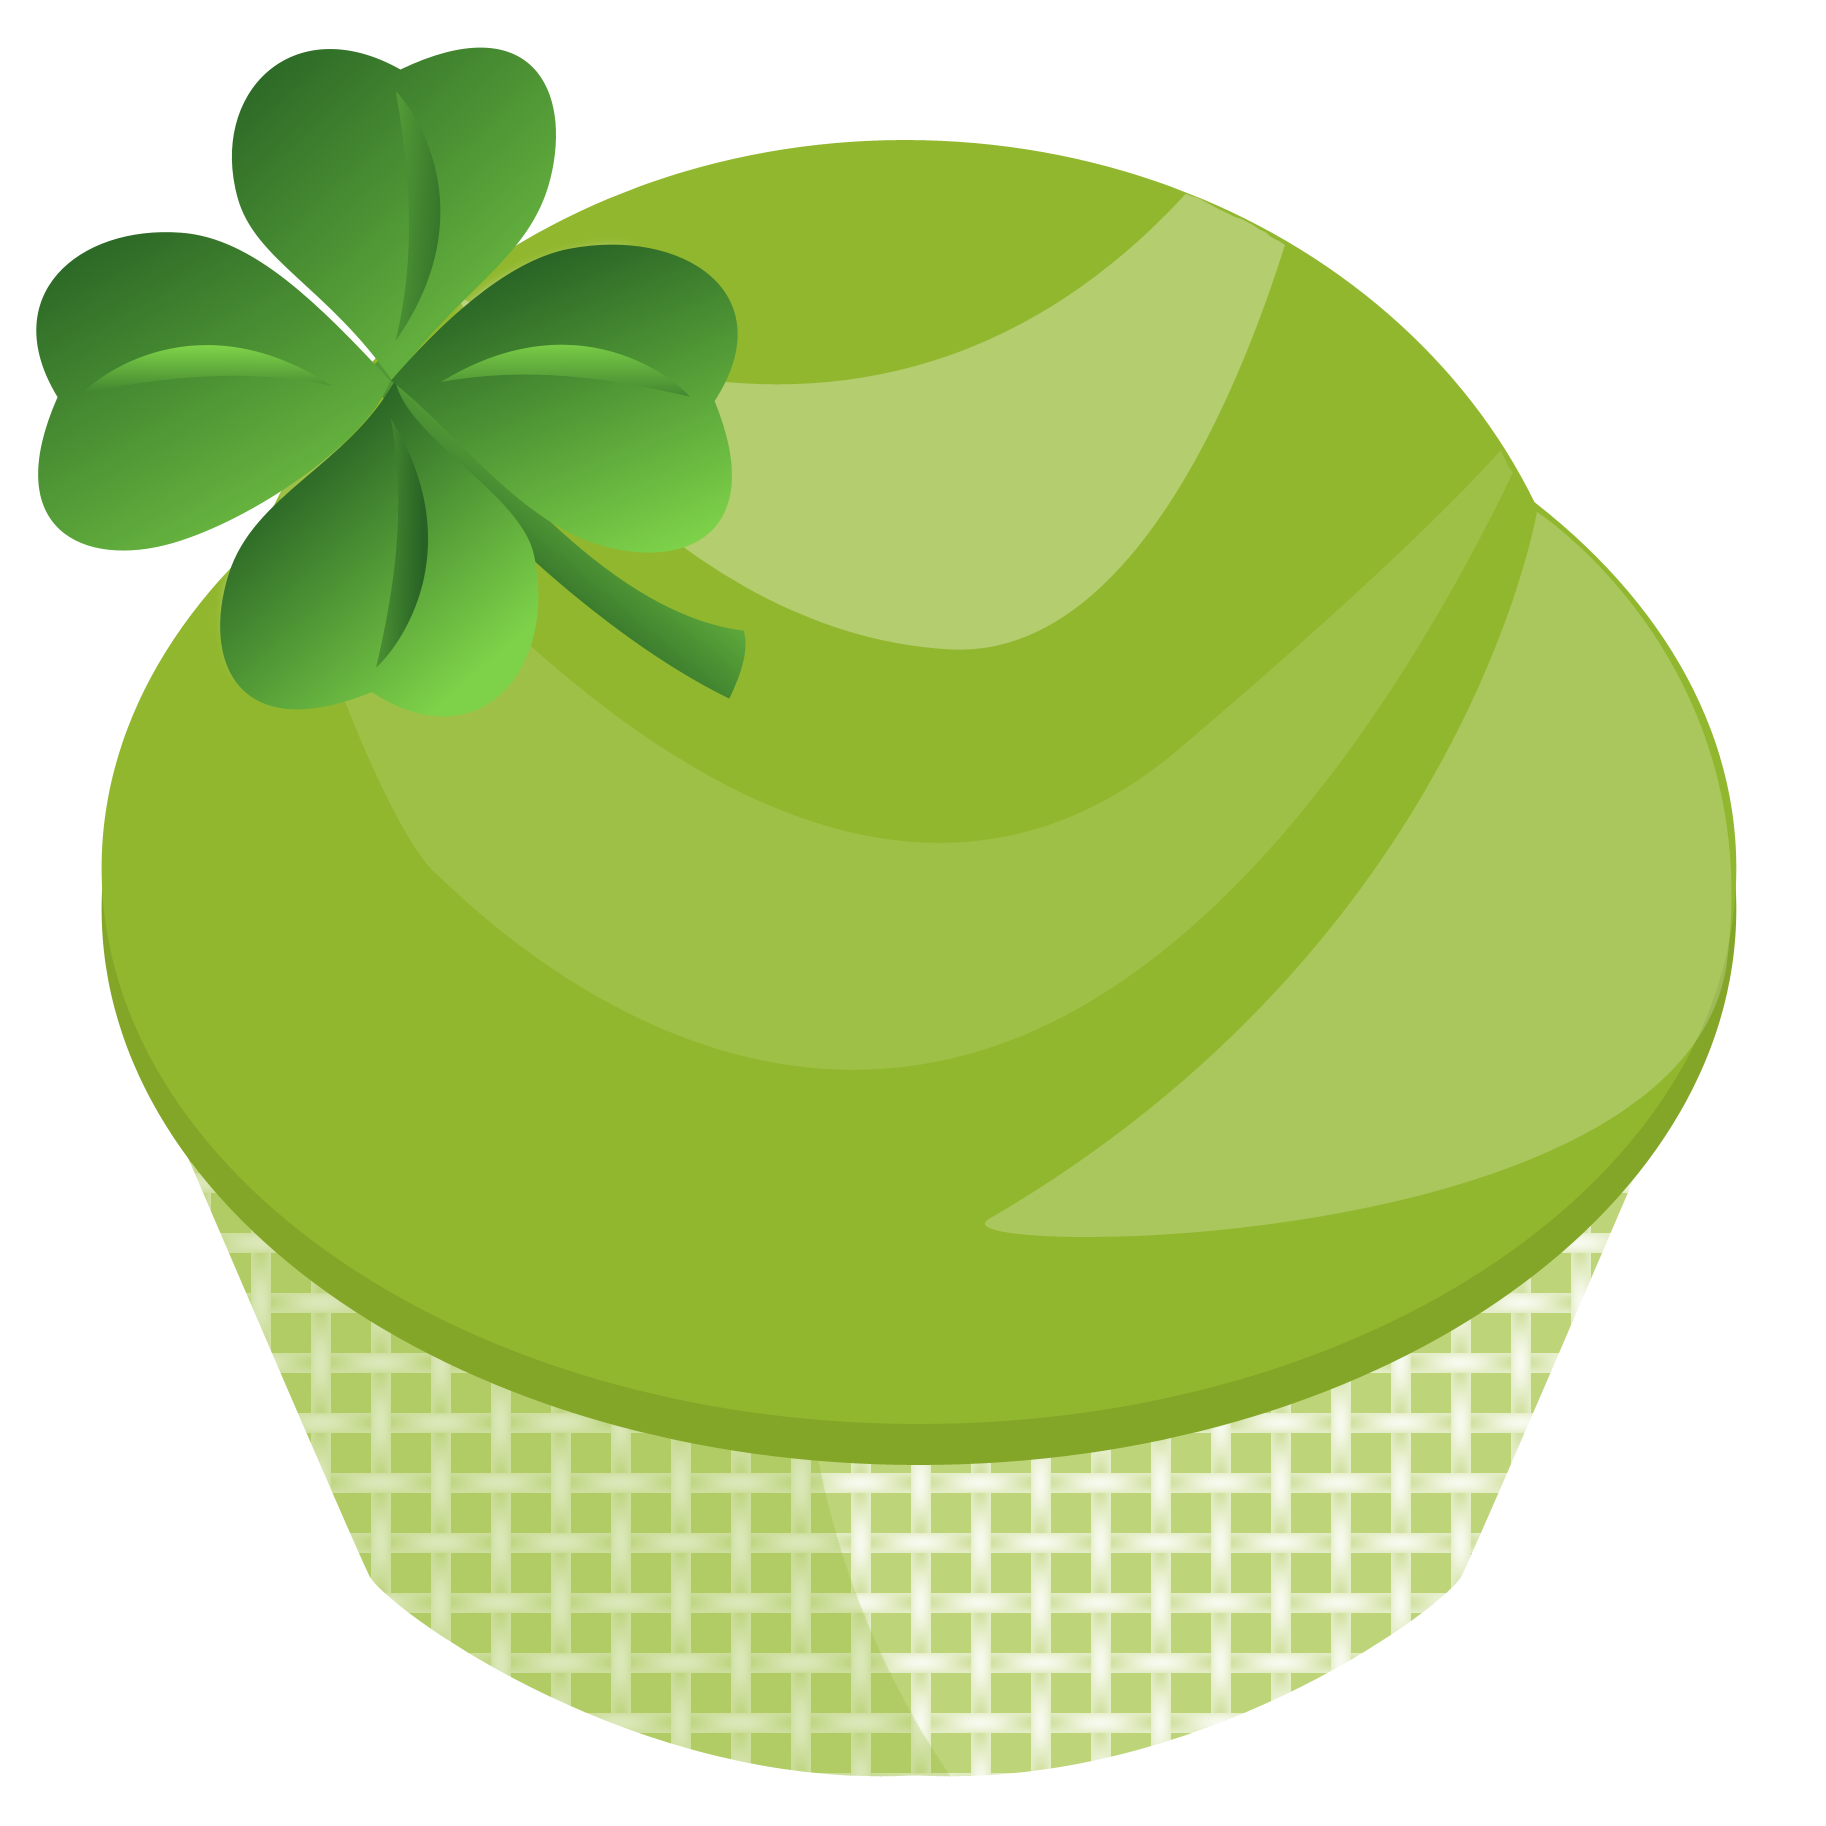 Clipart  St Patricks Day Cupcake Graphic  St  Patricks Day Clipart